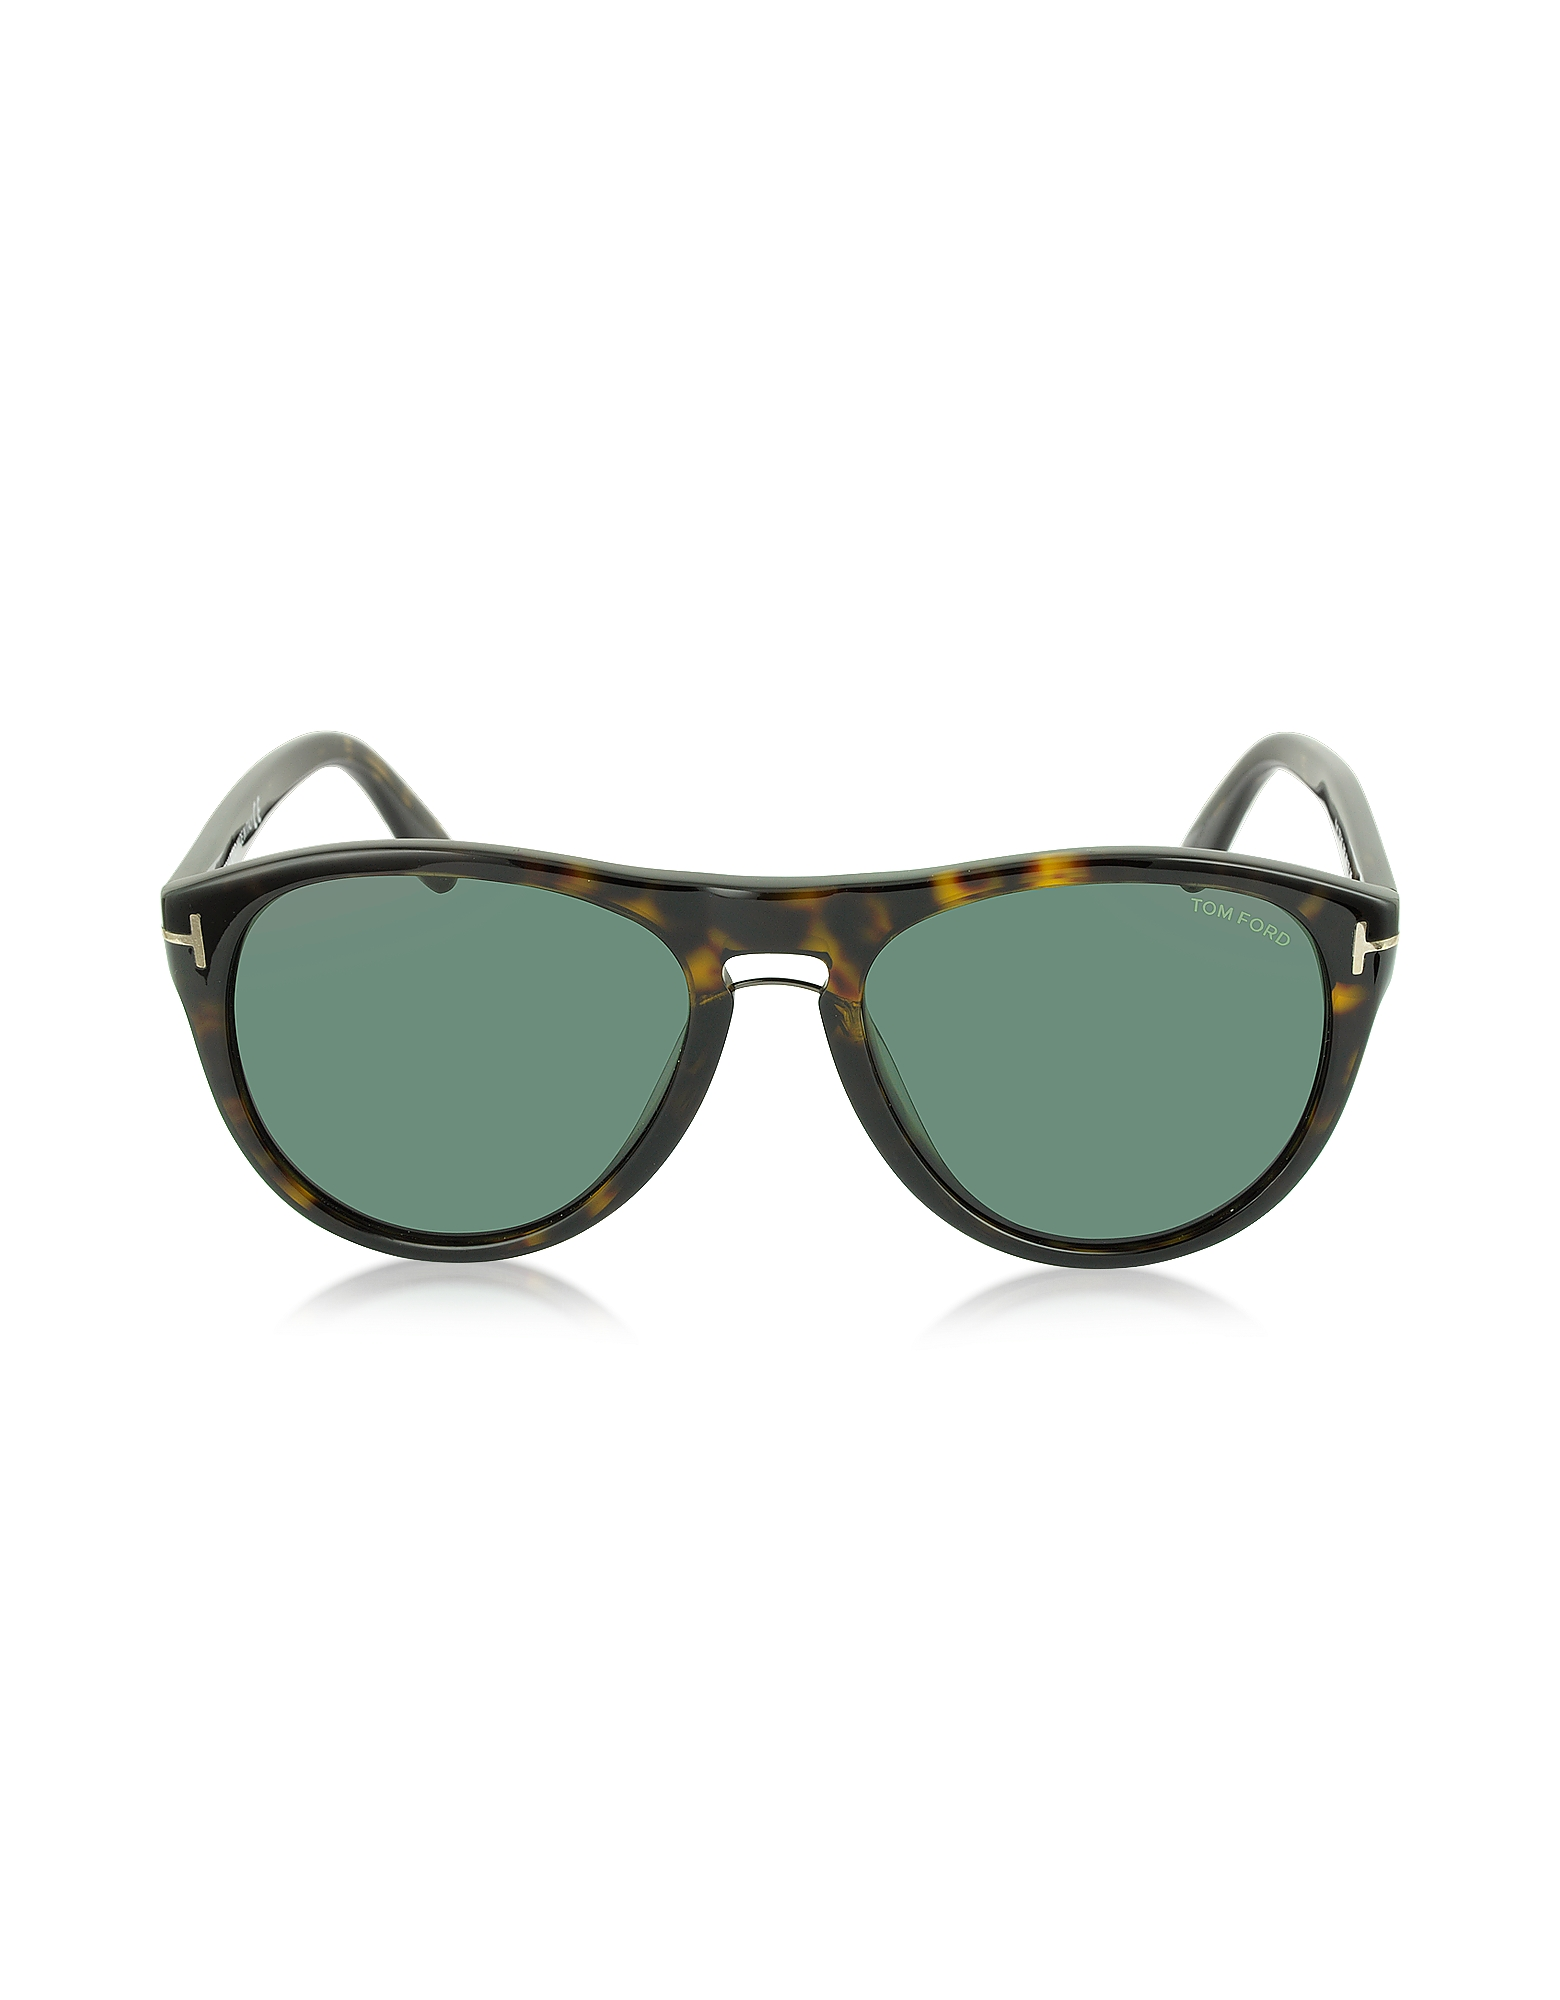 Tom Ford Sunglasses, KURT FT0347 Aviator Sunglasses